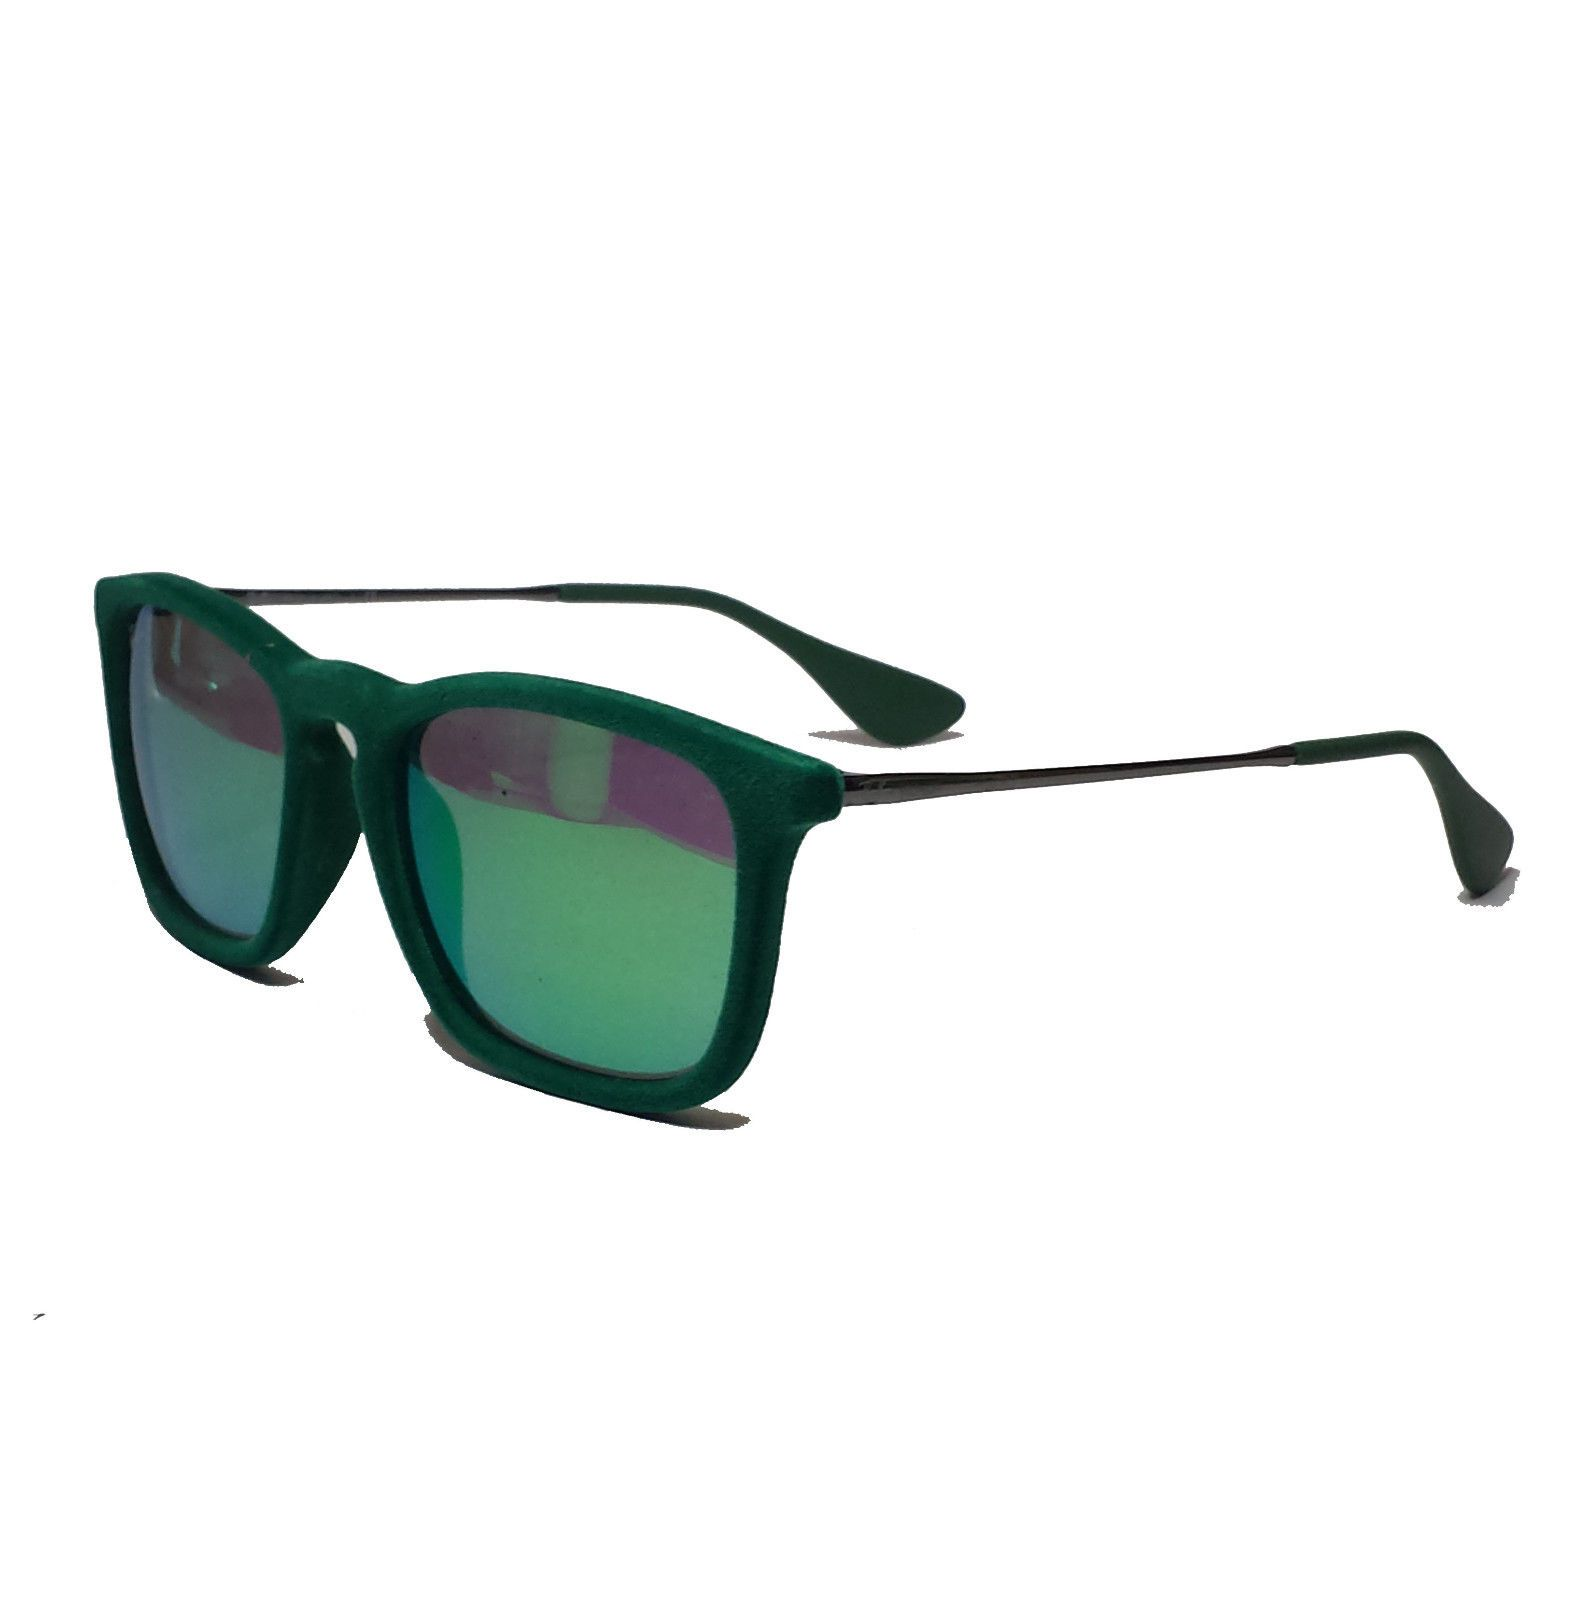 8e55fd143b2  accessory luxury success impress Ray-Ban RB 4187 CHRIS Gunmetal GREEN  sunglasses Made in